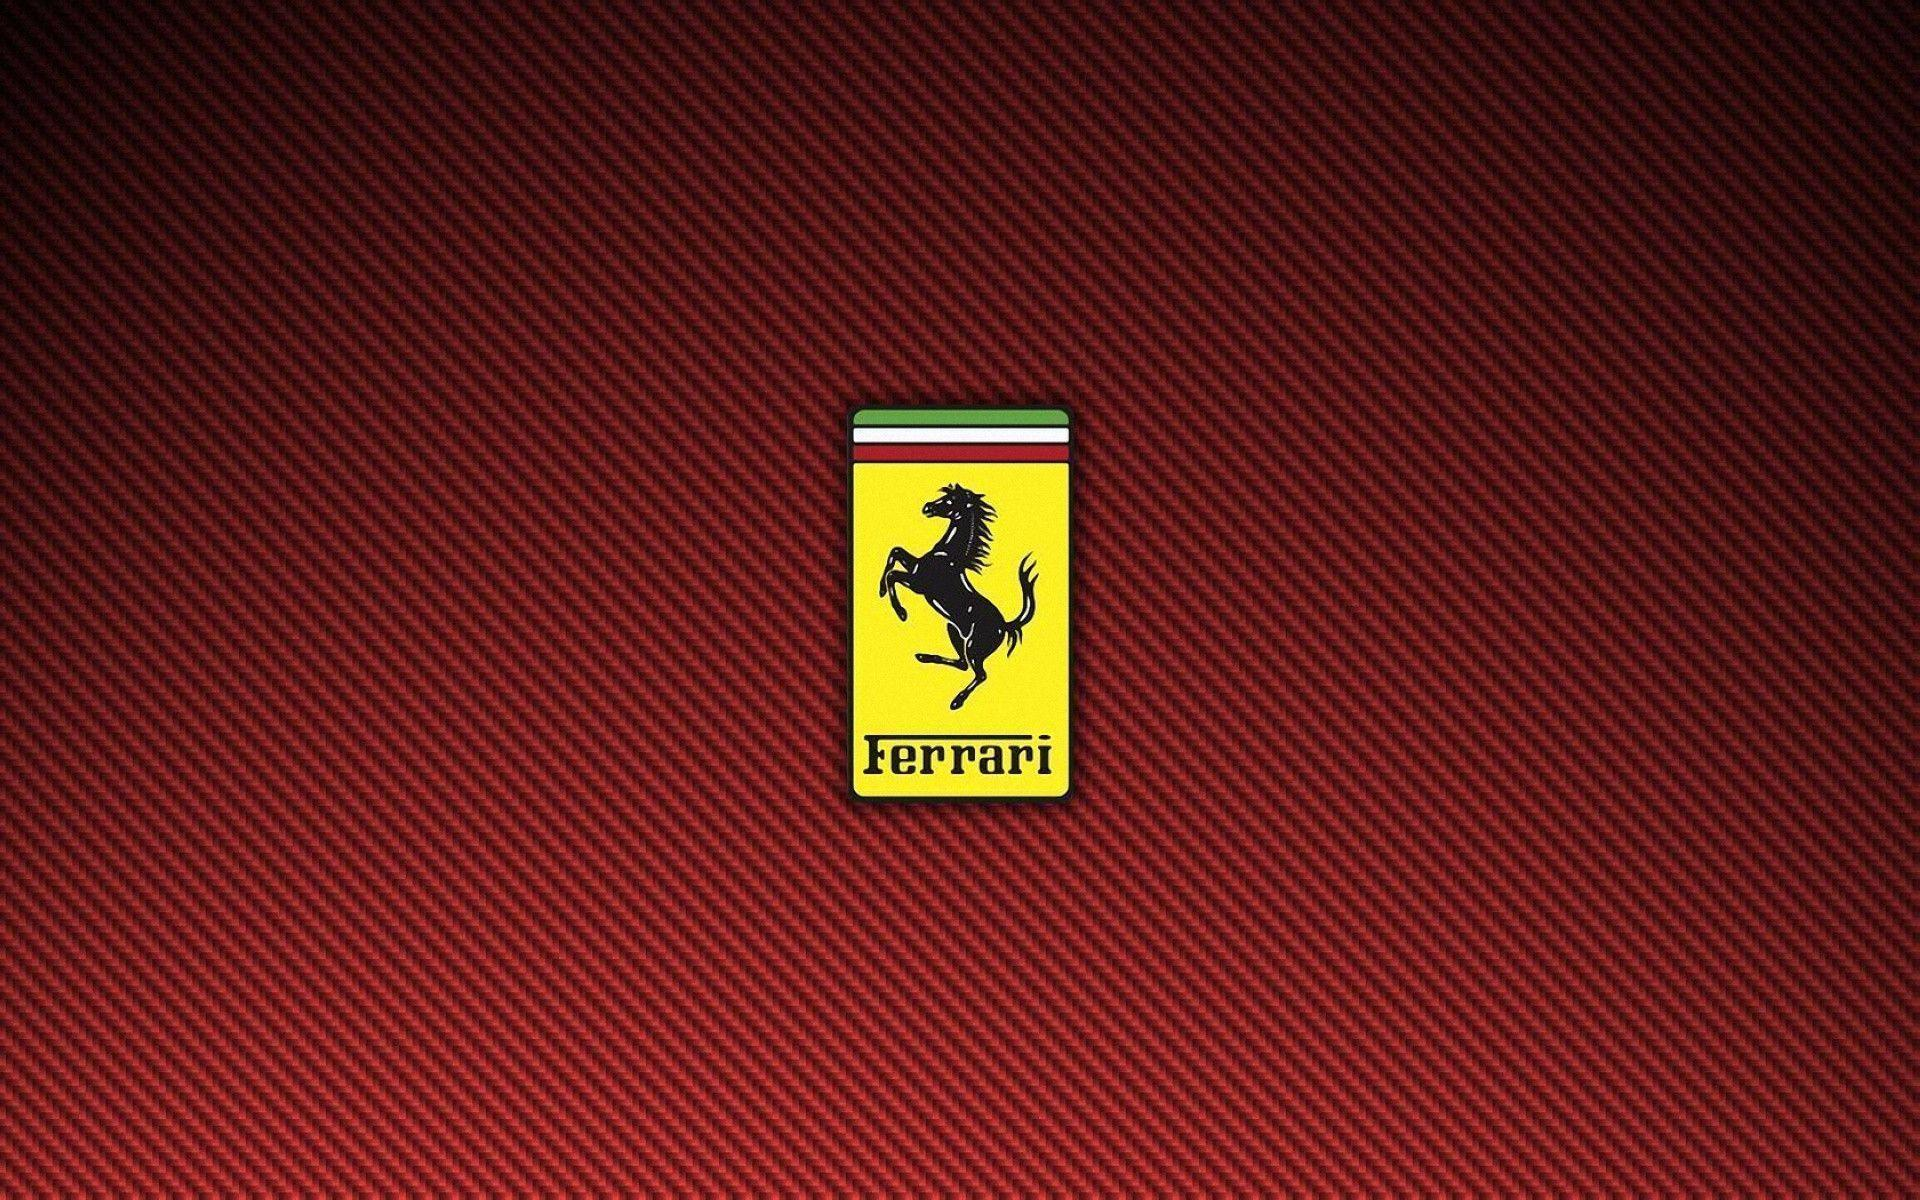 FunMozar Ferrari Logo Wallpapers